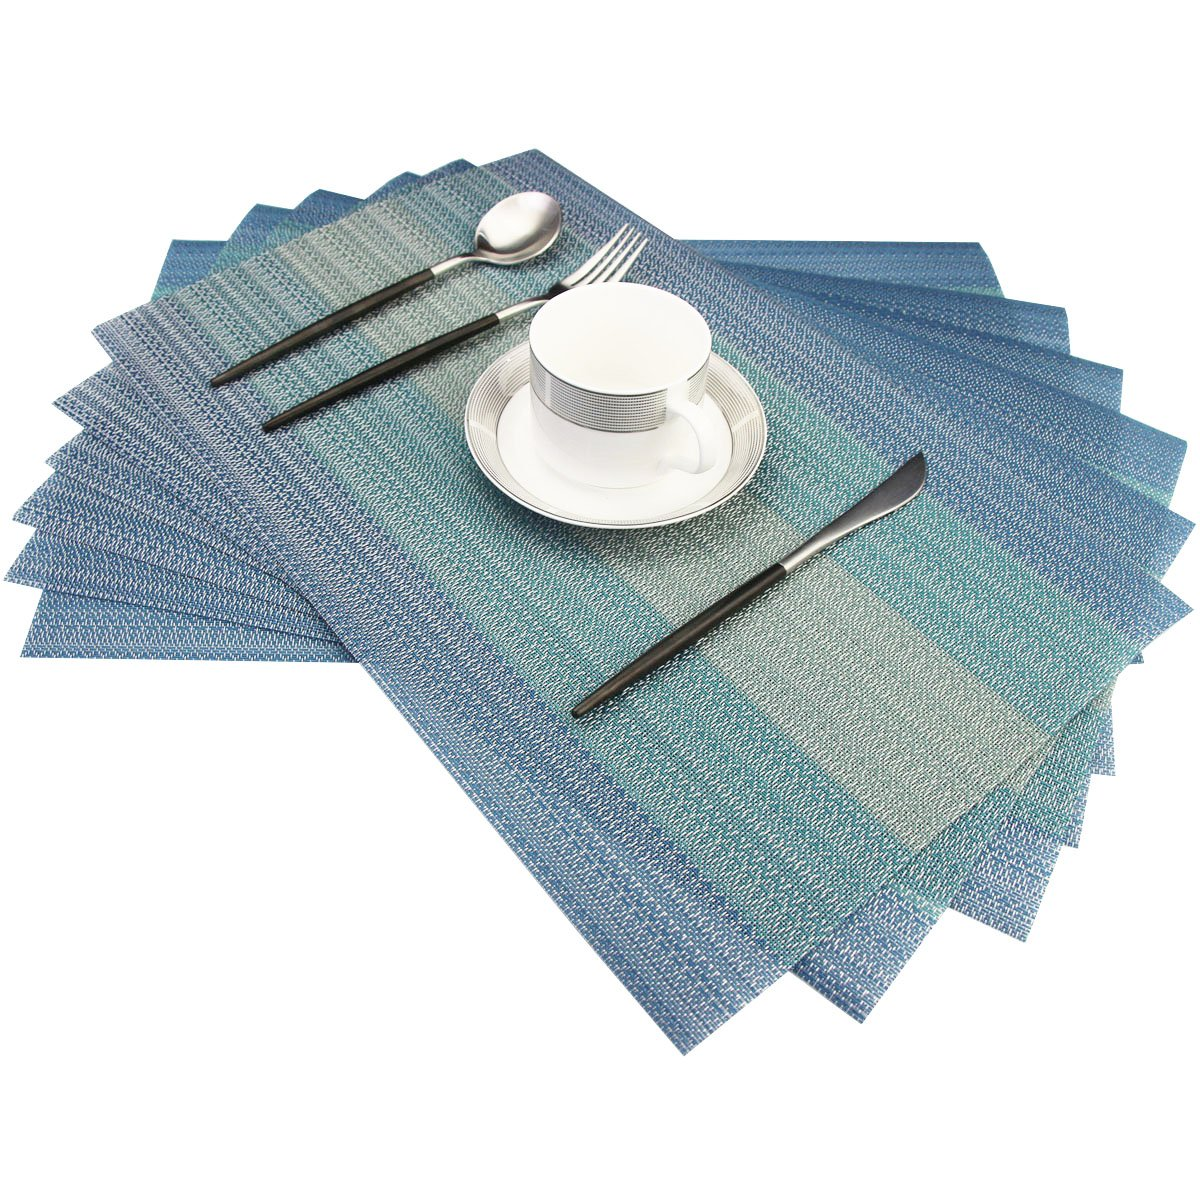 Top 10 Best Placemats